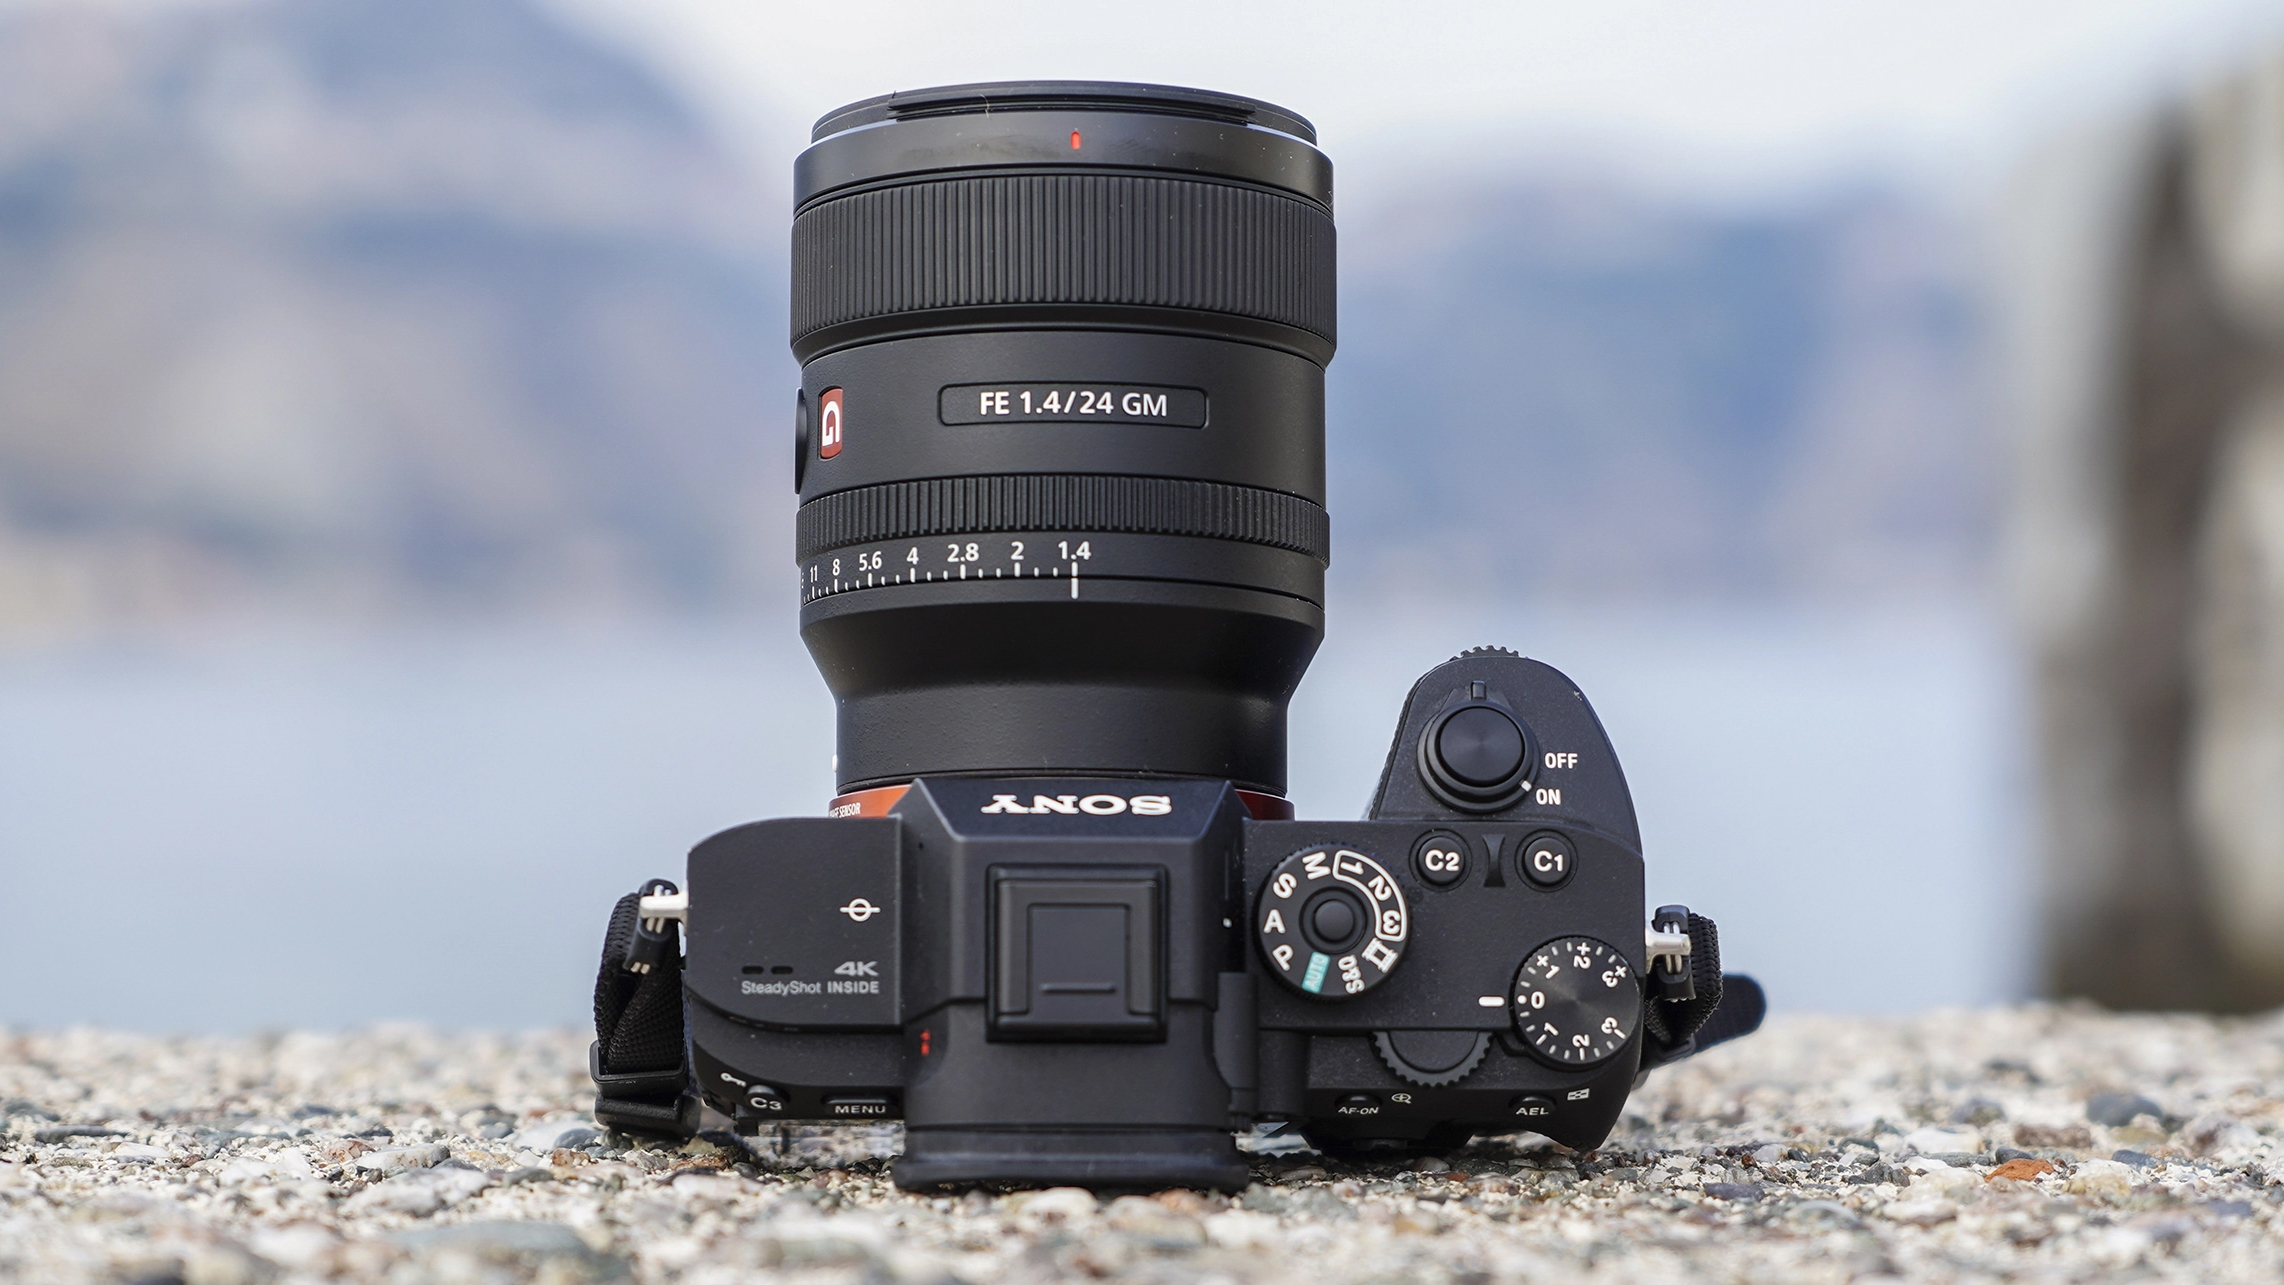 Best Sony lenses 2020: 16 top lenses for Sony mirrorless cameras